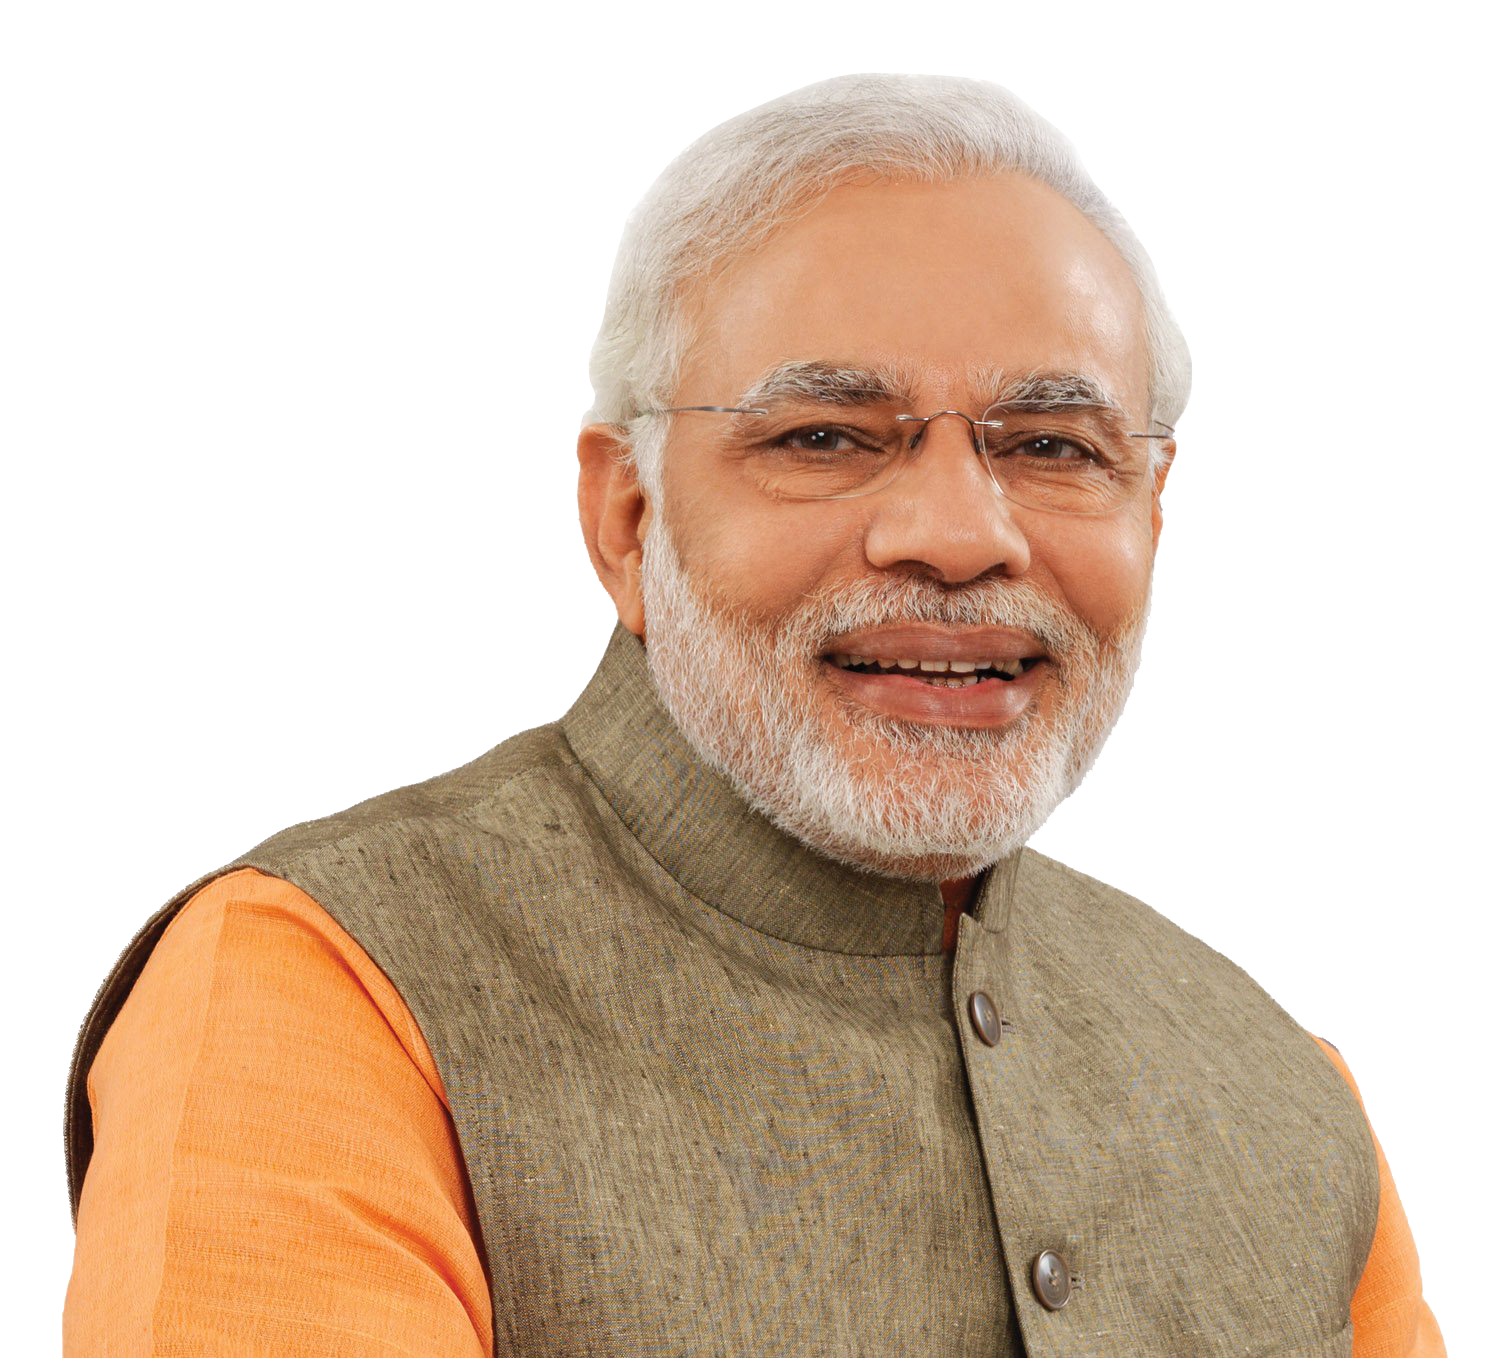 Prime Of India Narendra Chief Minister Modi PNG Image